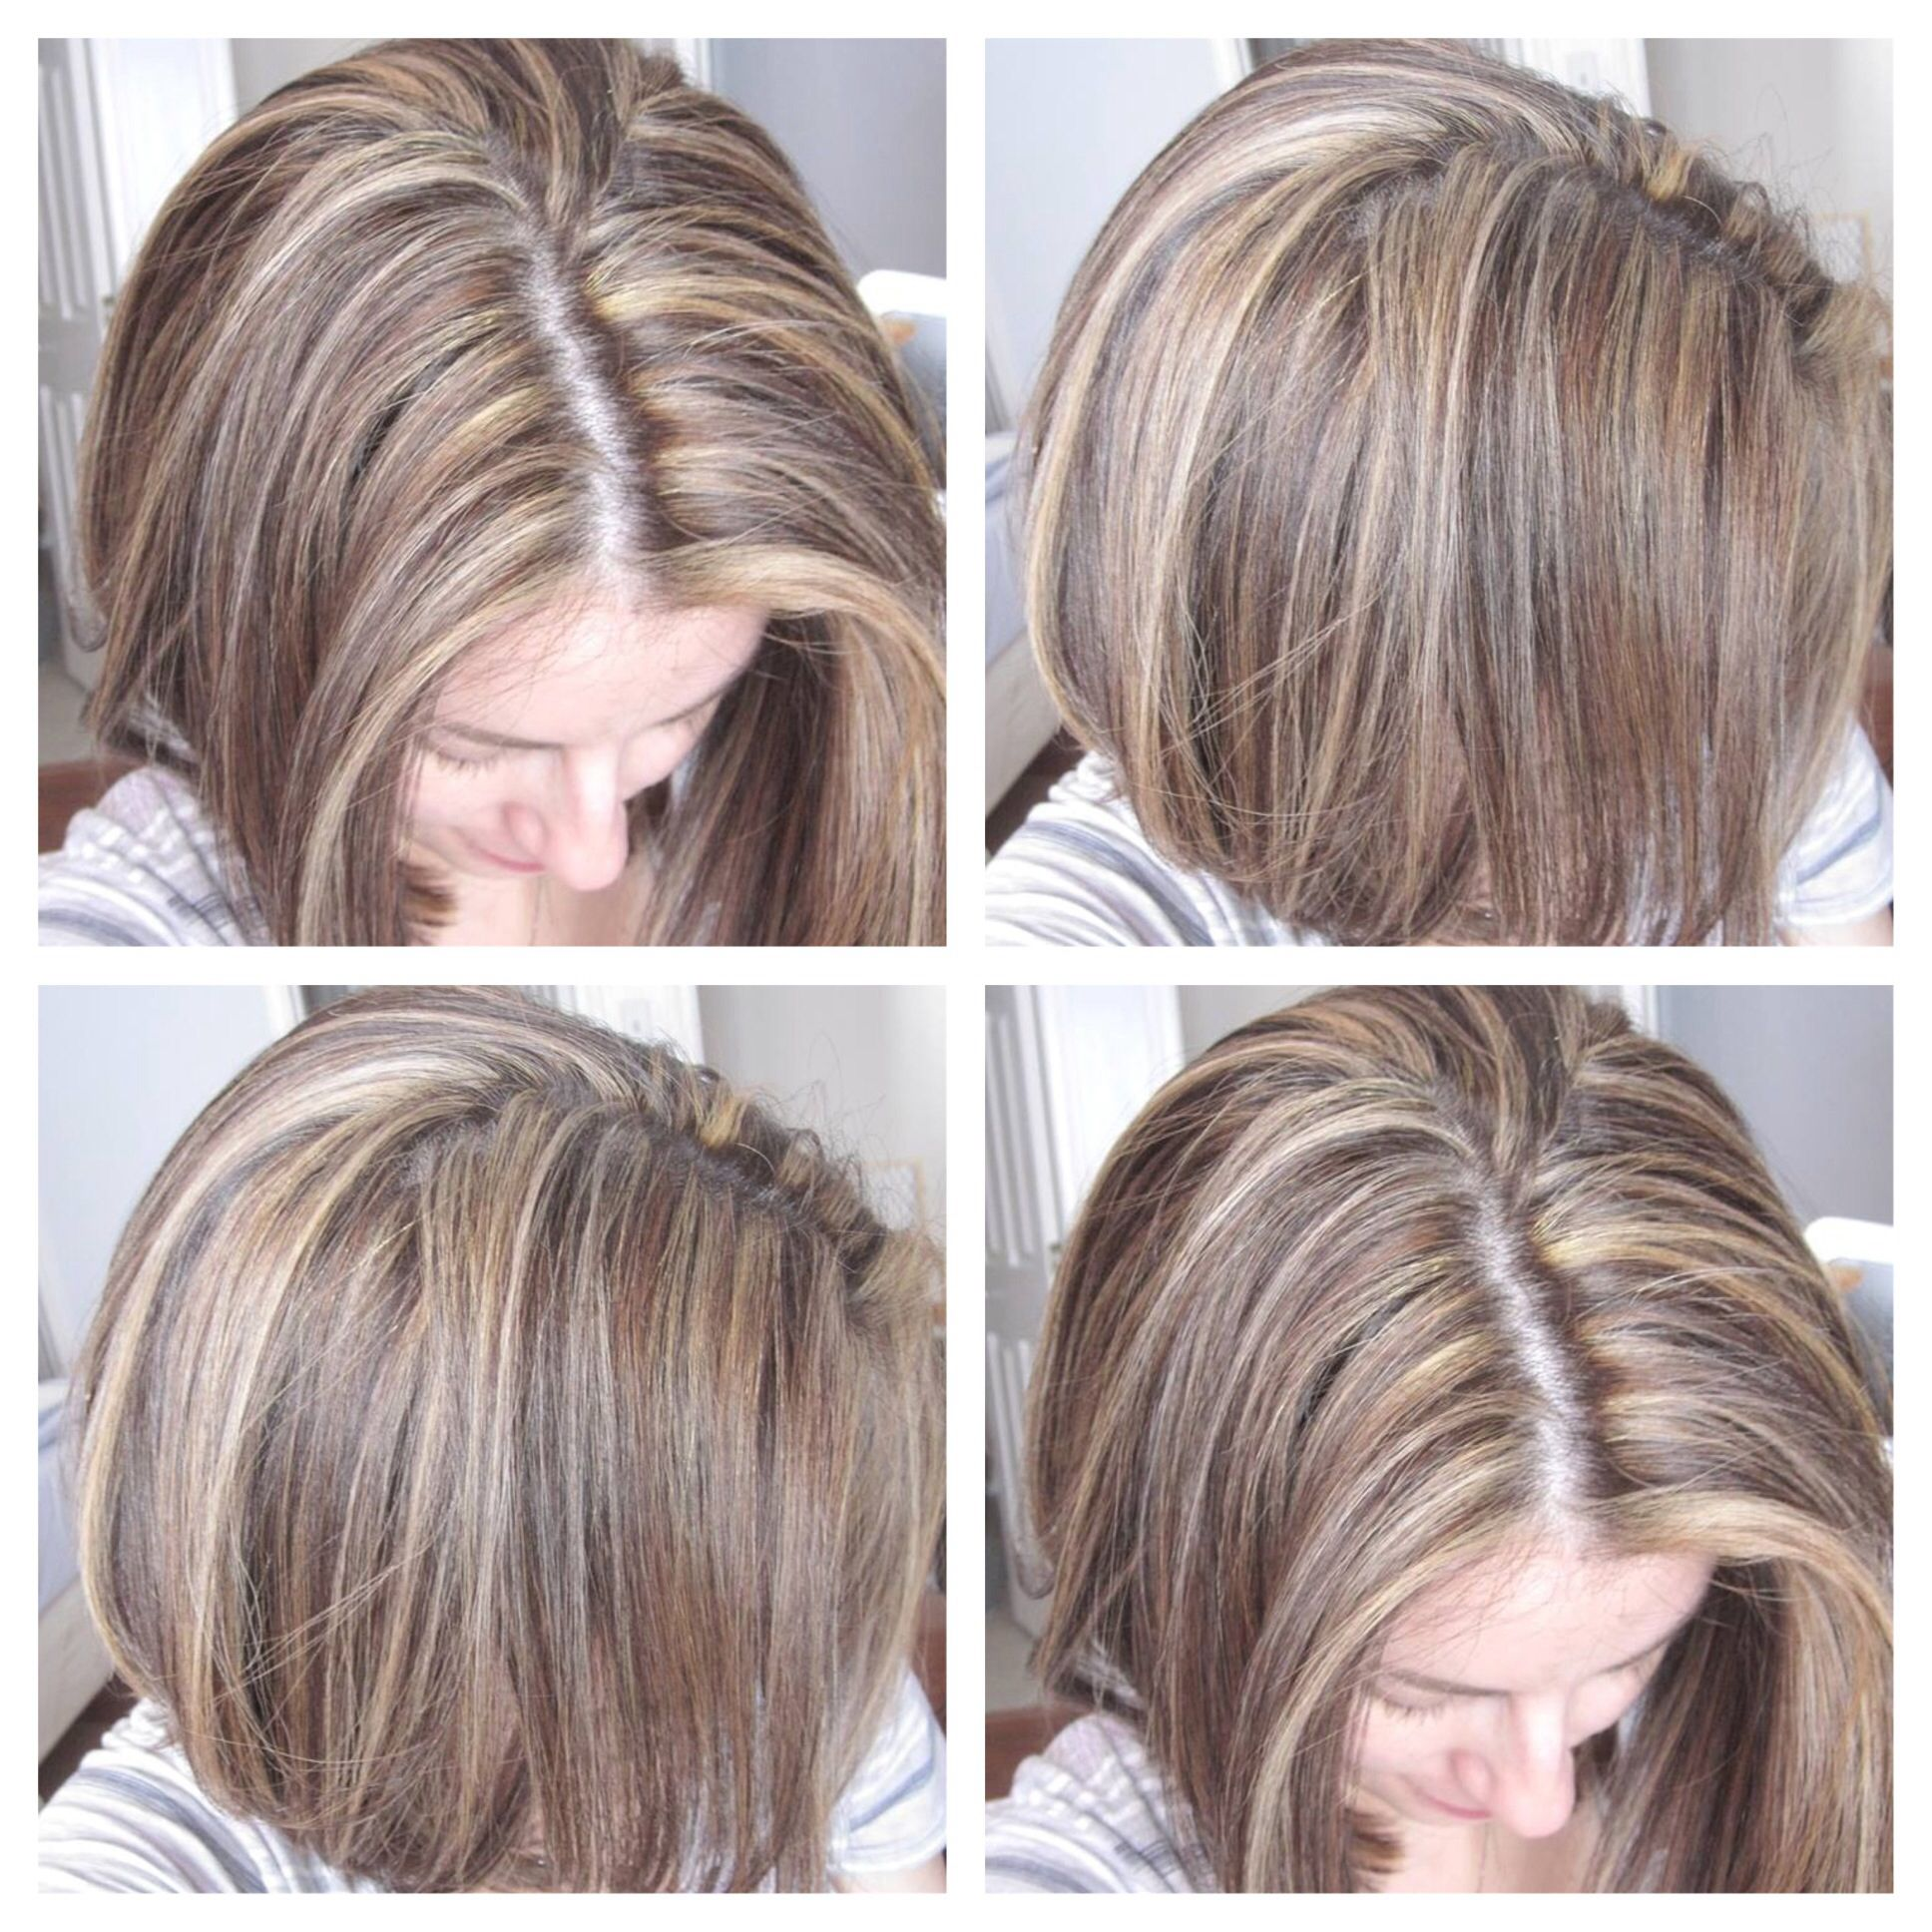 Tricolordimensional hair highlights blonde and light brown